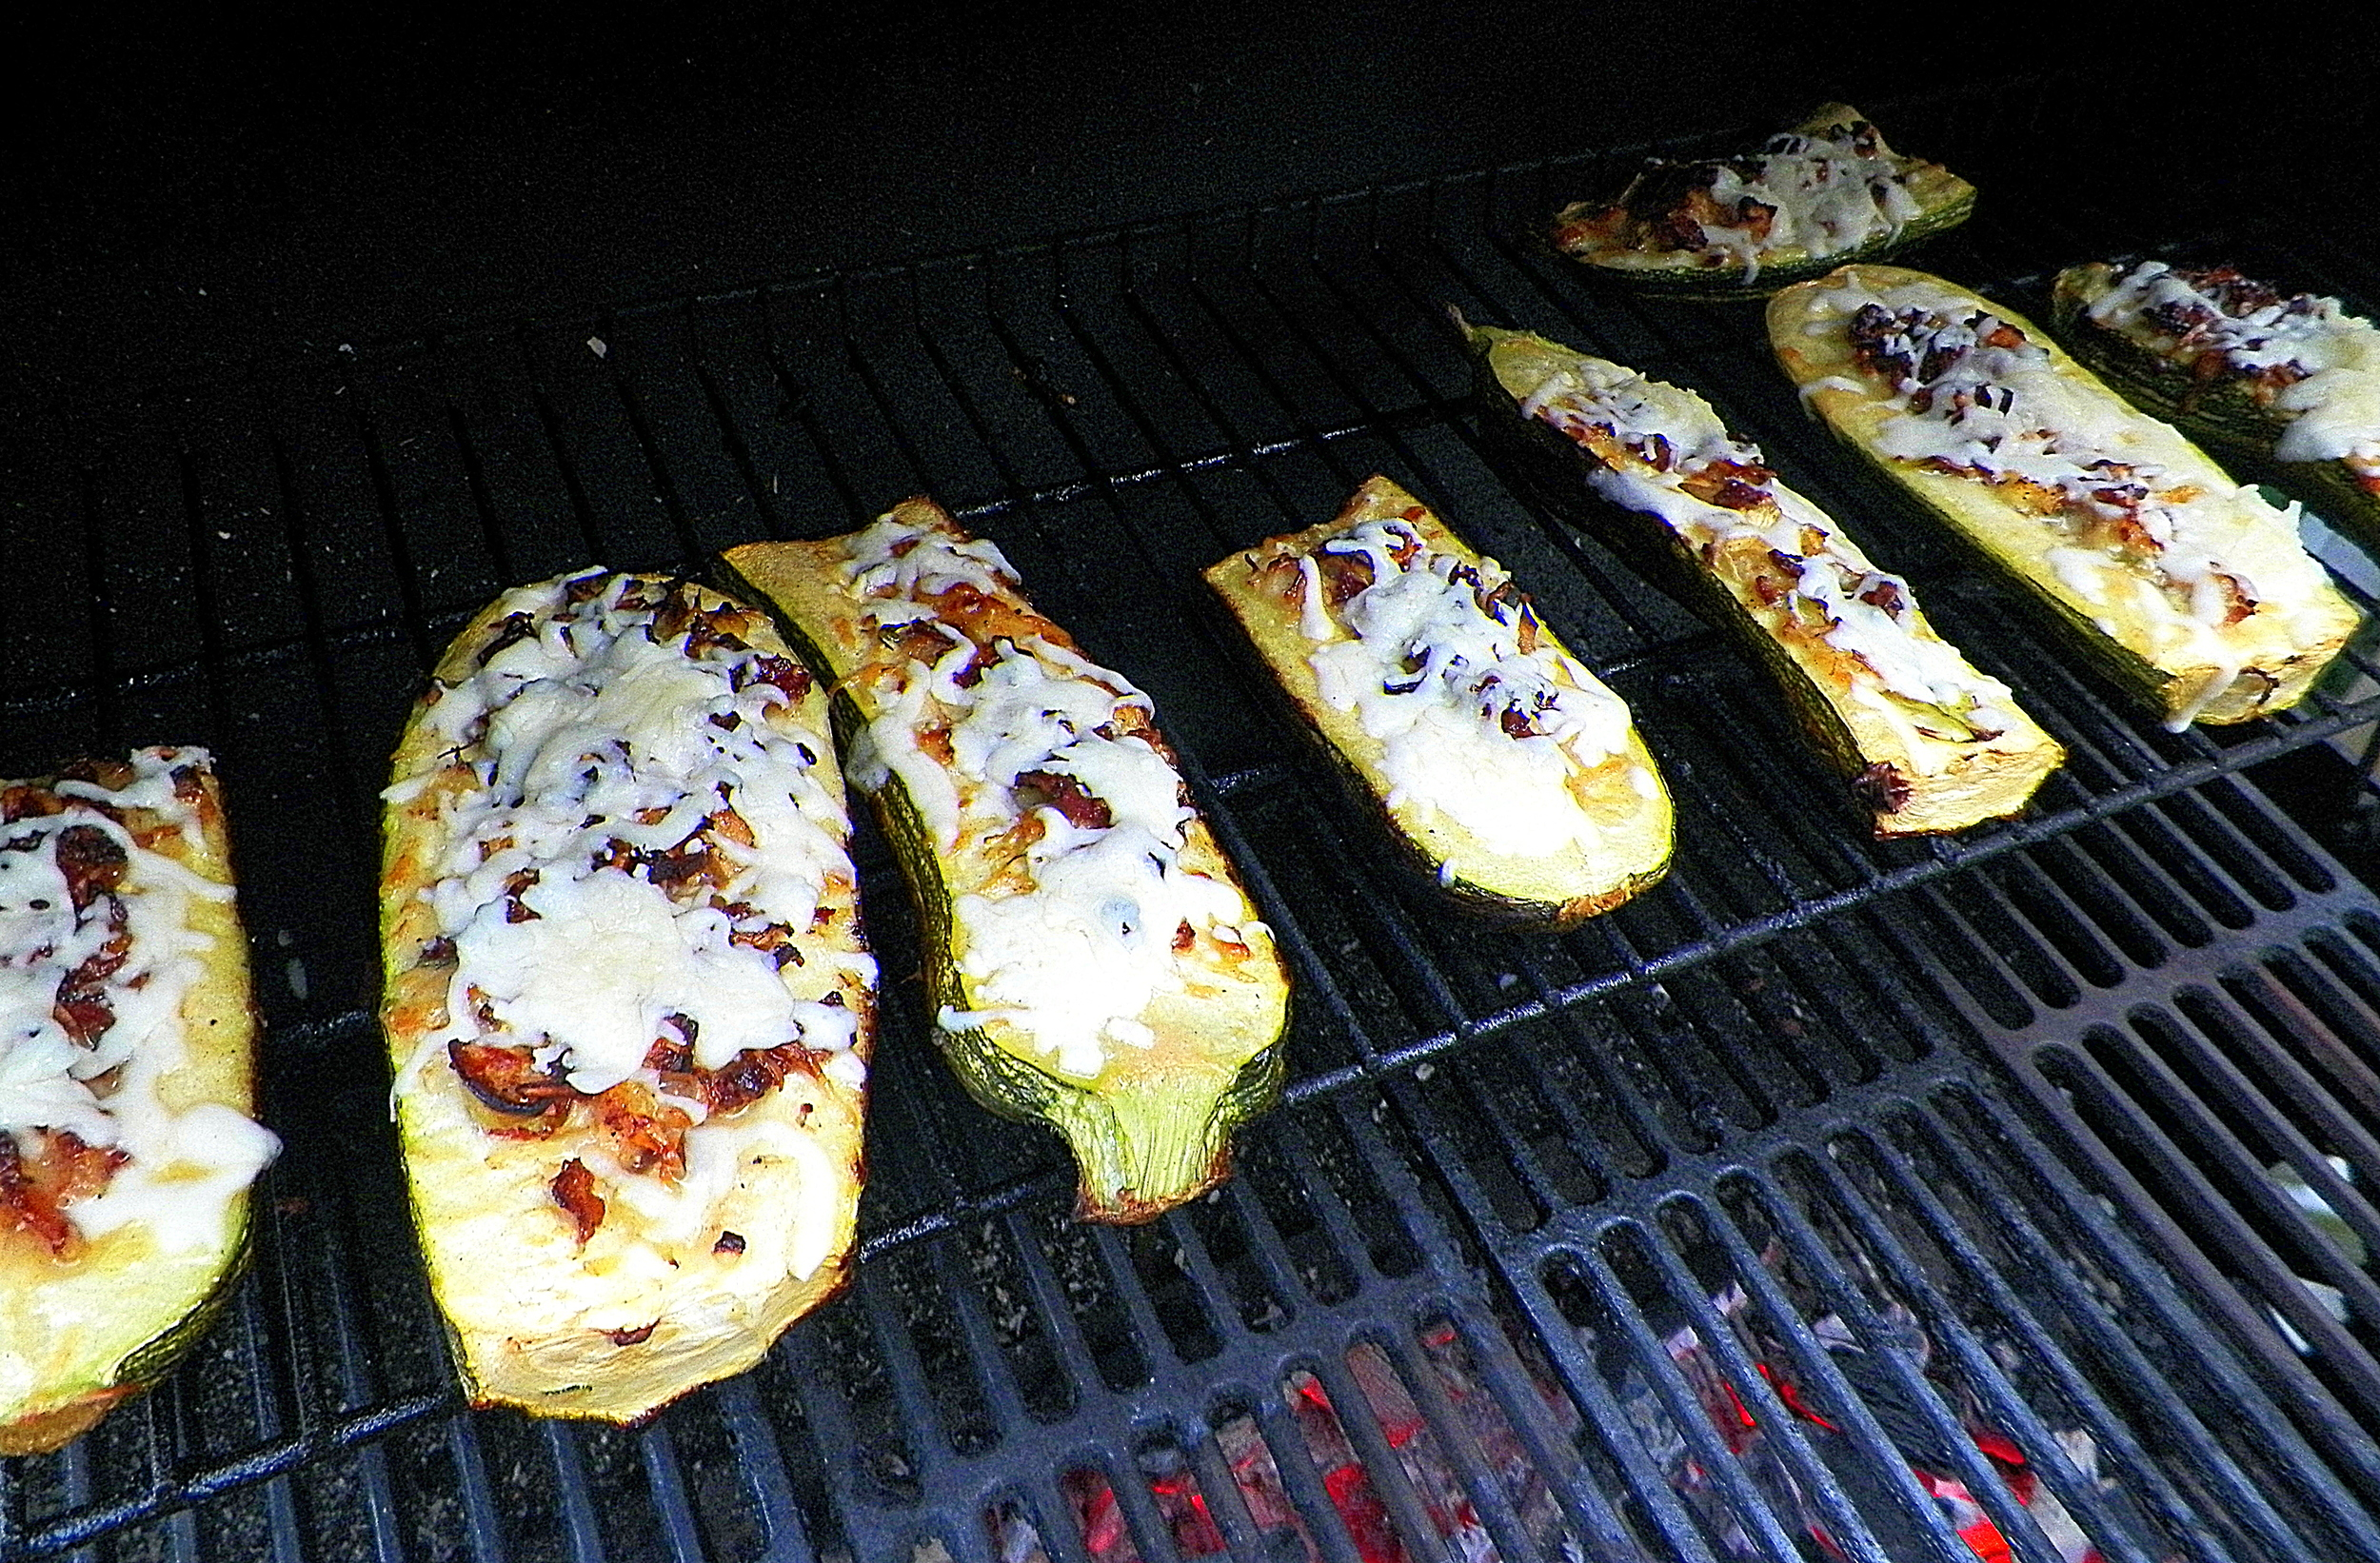 Zucchini on the grill.